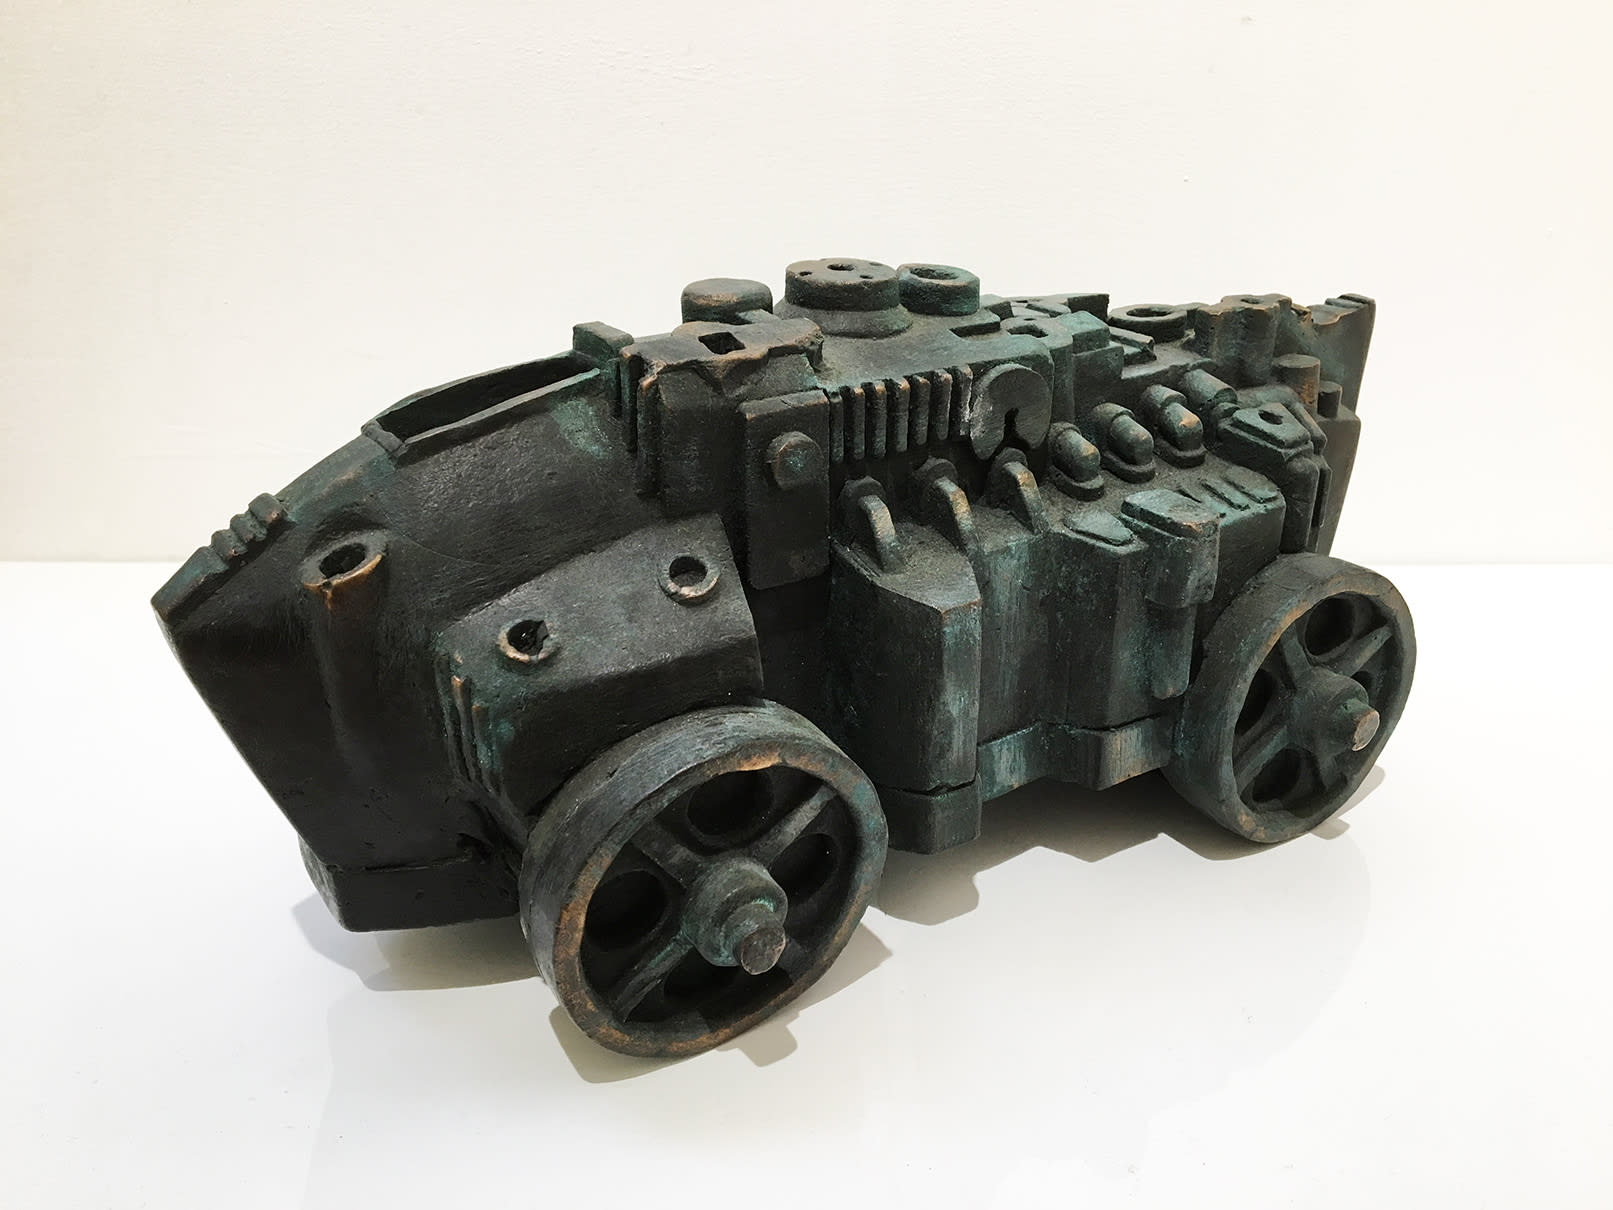 """<span class=""""link fancybox-details-link""""><a href=""""/artists/60-eduardo-paolozzi/works/434-eduardo-paolozzi-engine-racing-car-c.1998/"""">View Detail Page</a></span><div class=""""artist""""><strong>Eduardo Paolozzi</strong></div> 1924-2005 <div class=""""title""""><em>Engine - Racing Car</em>, c.1998</div> <div class=""""signed_and_dated"""">signed (inscribed on base)</div> <div class=""""medium"""">cast bronze</div> <div class=""""dimensions"""">6 1/8 x 6 3/4 x 13 3/8 in<br /> h:15.5 x w:17 x l:34 cm</div>"""